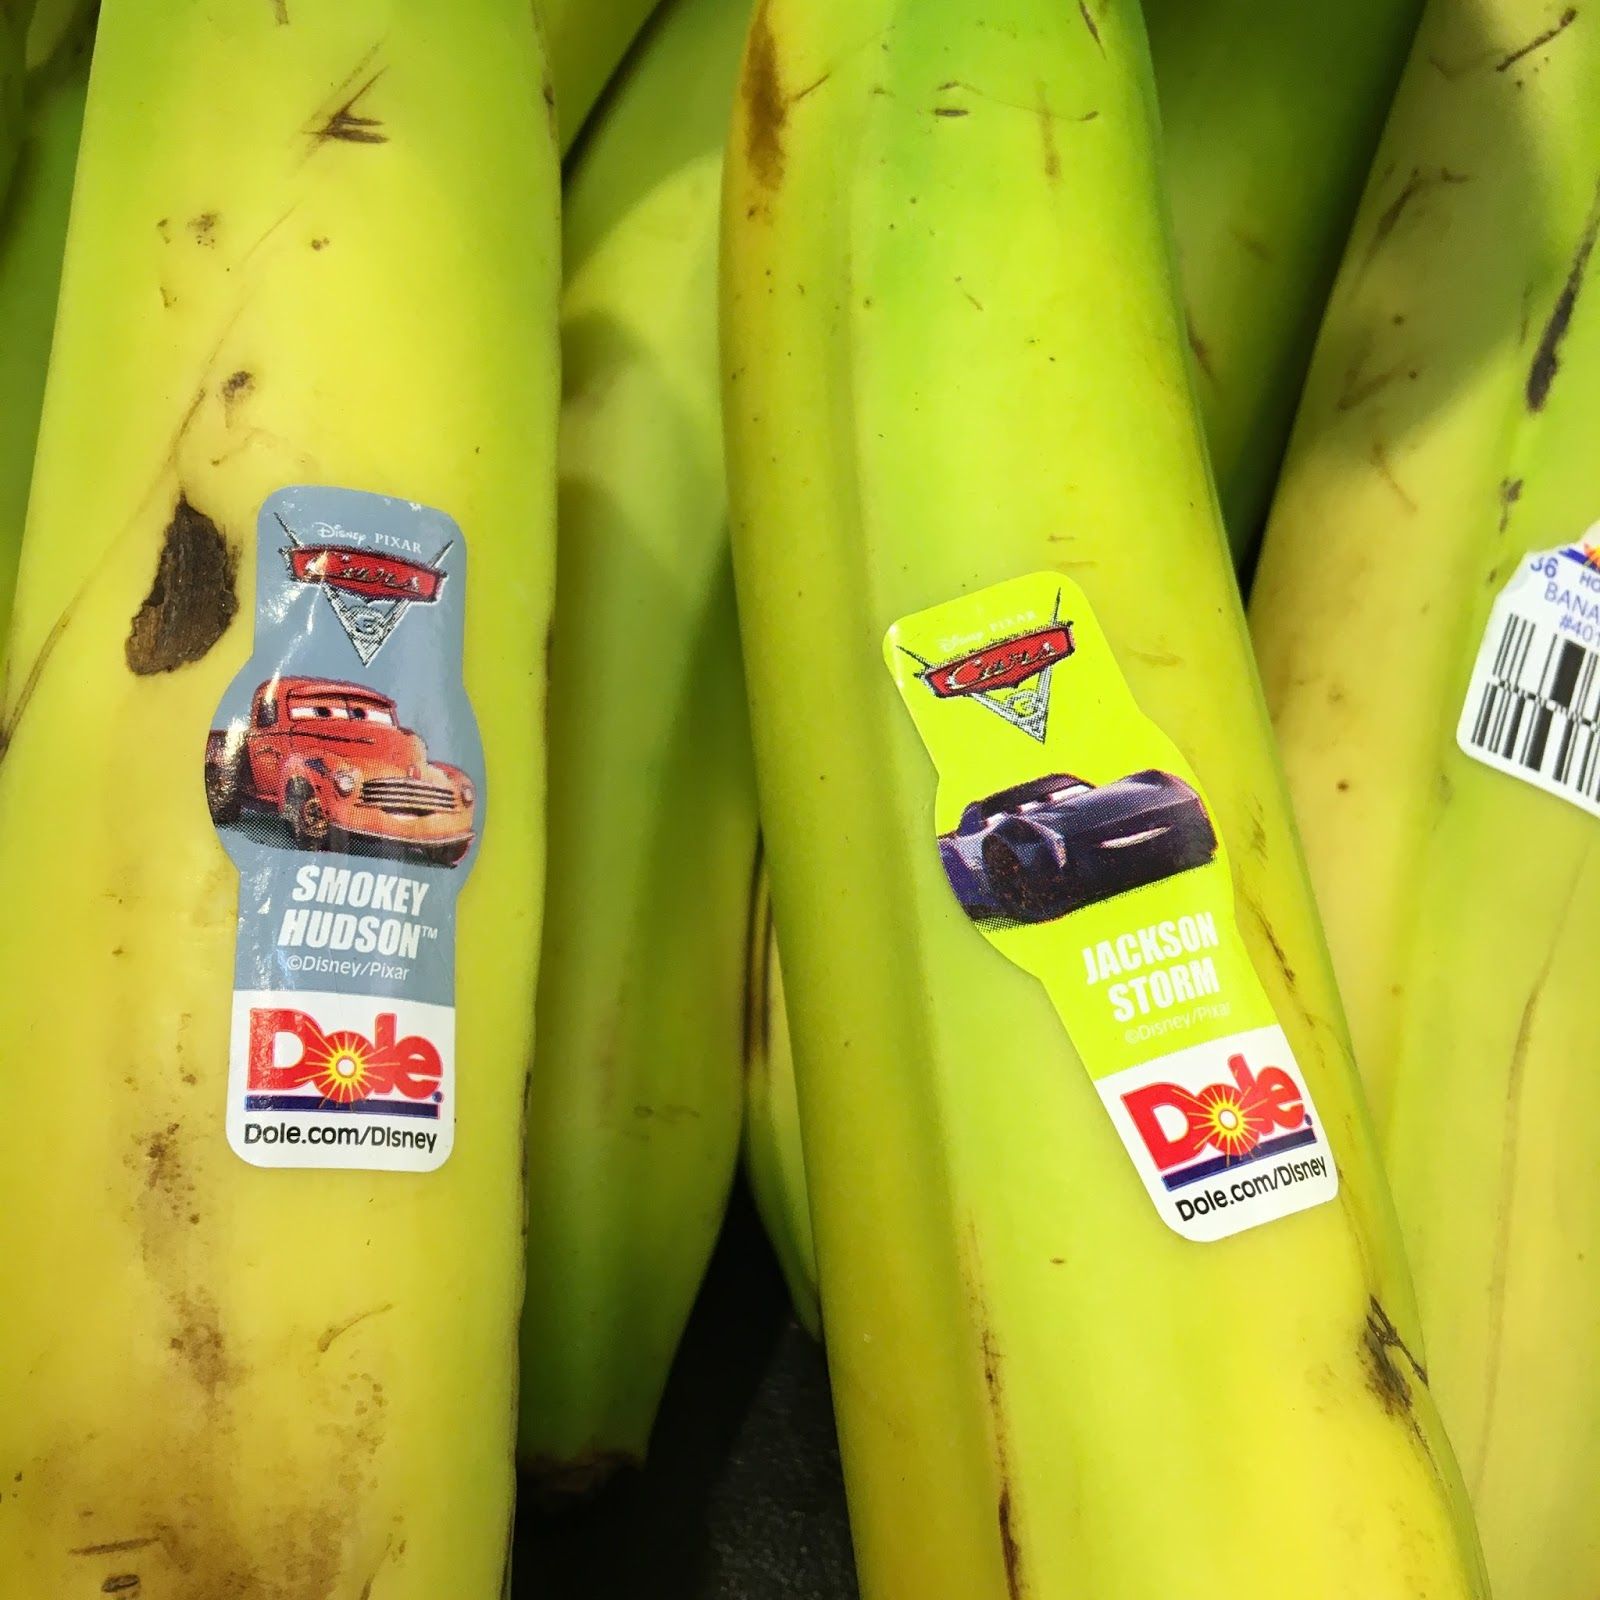 disney pixar cars 3 dole bananas